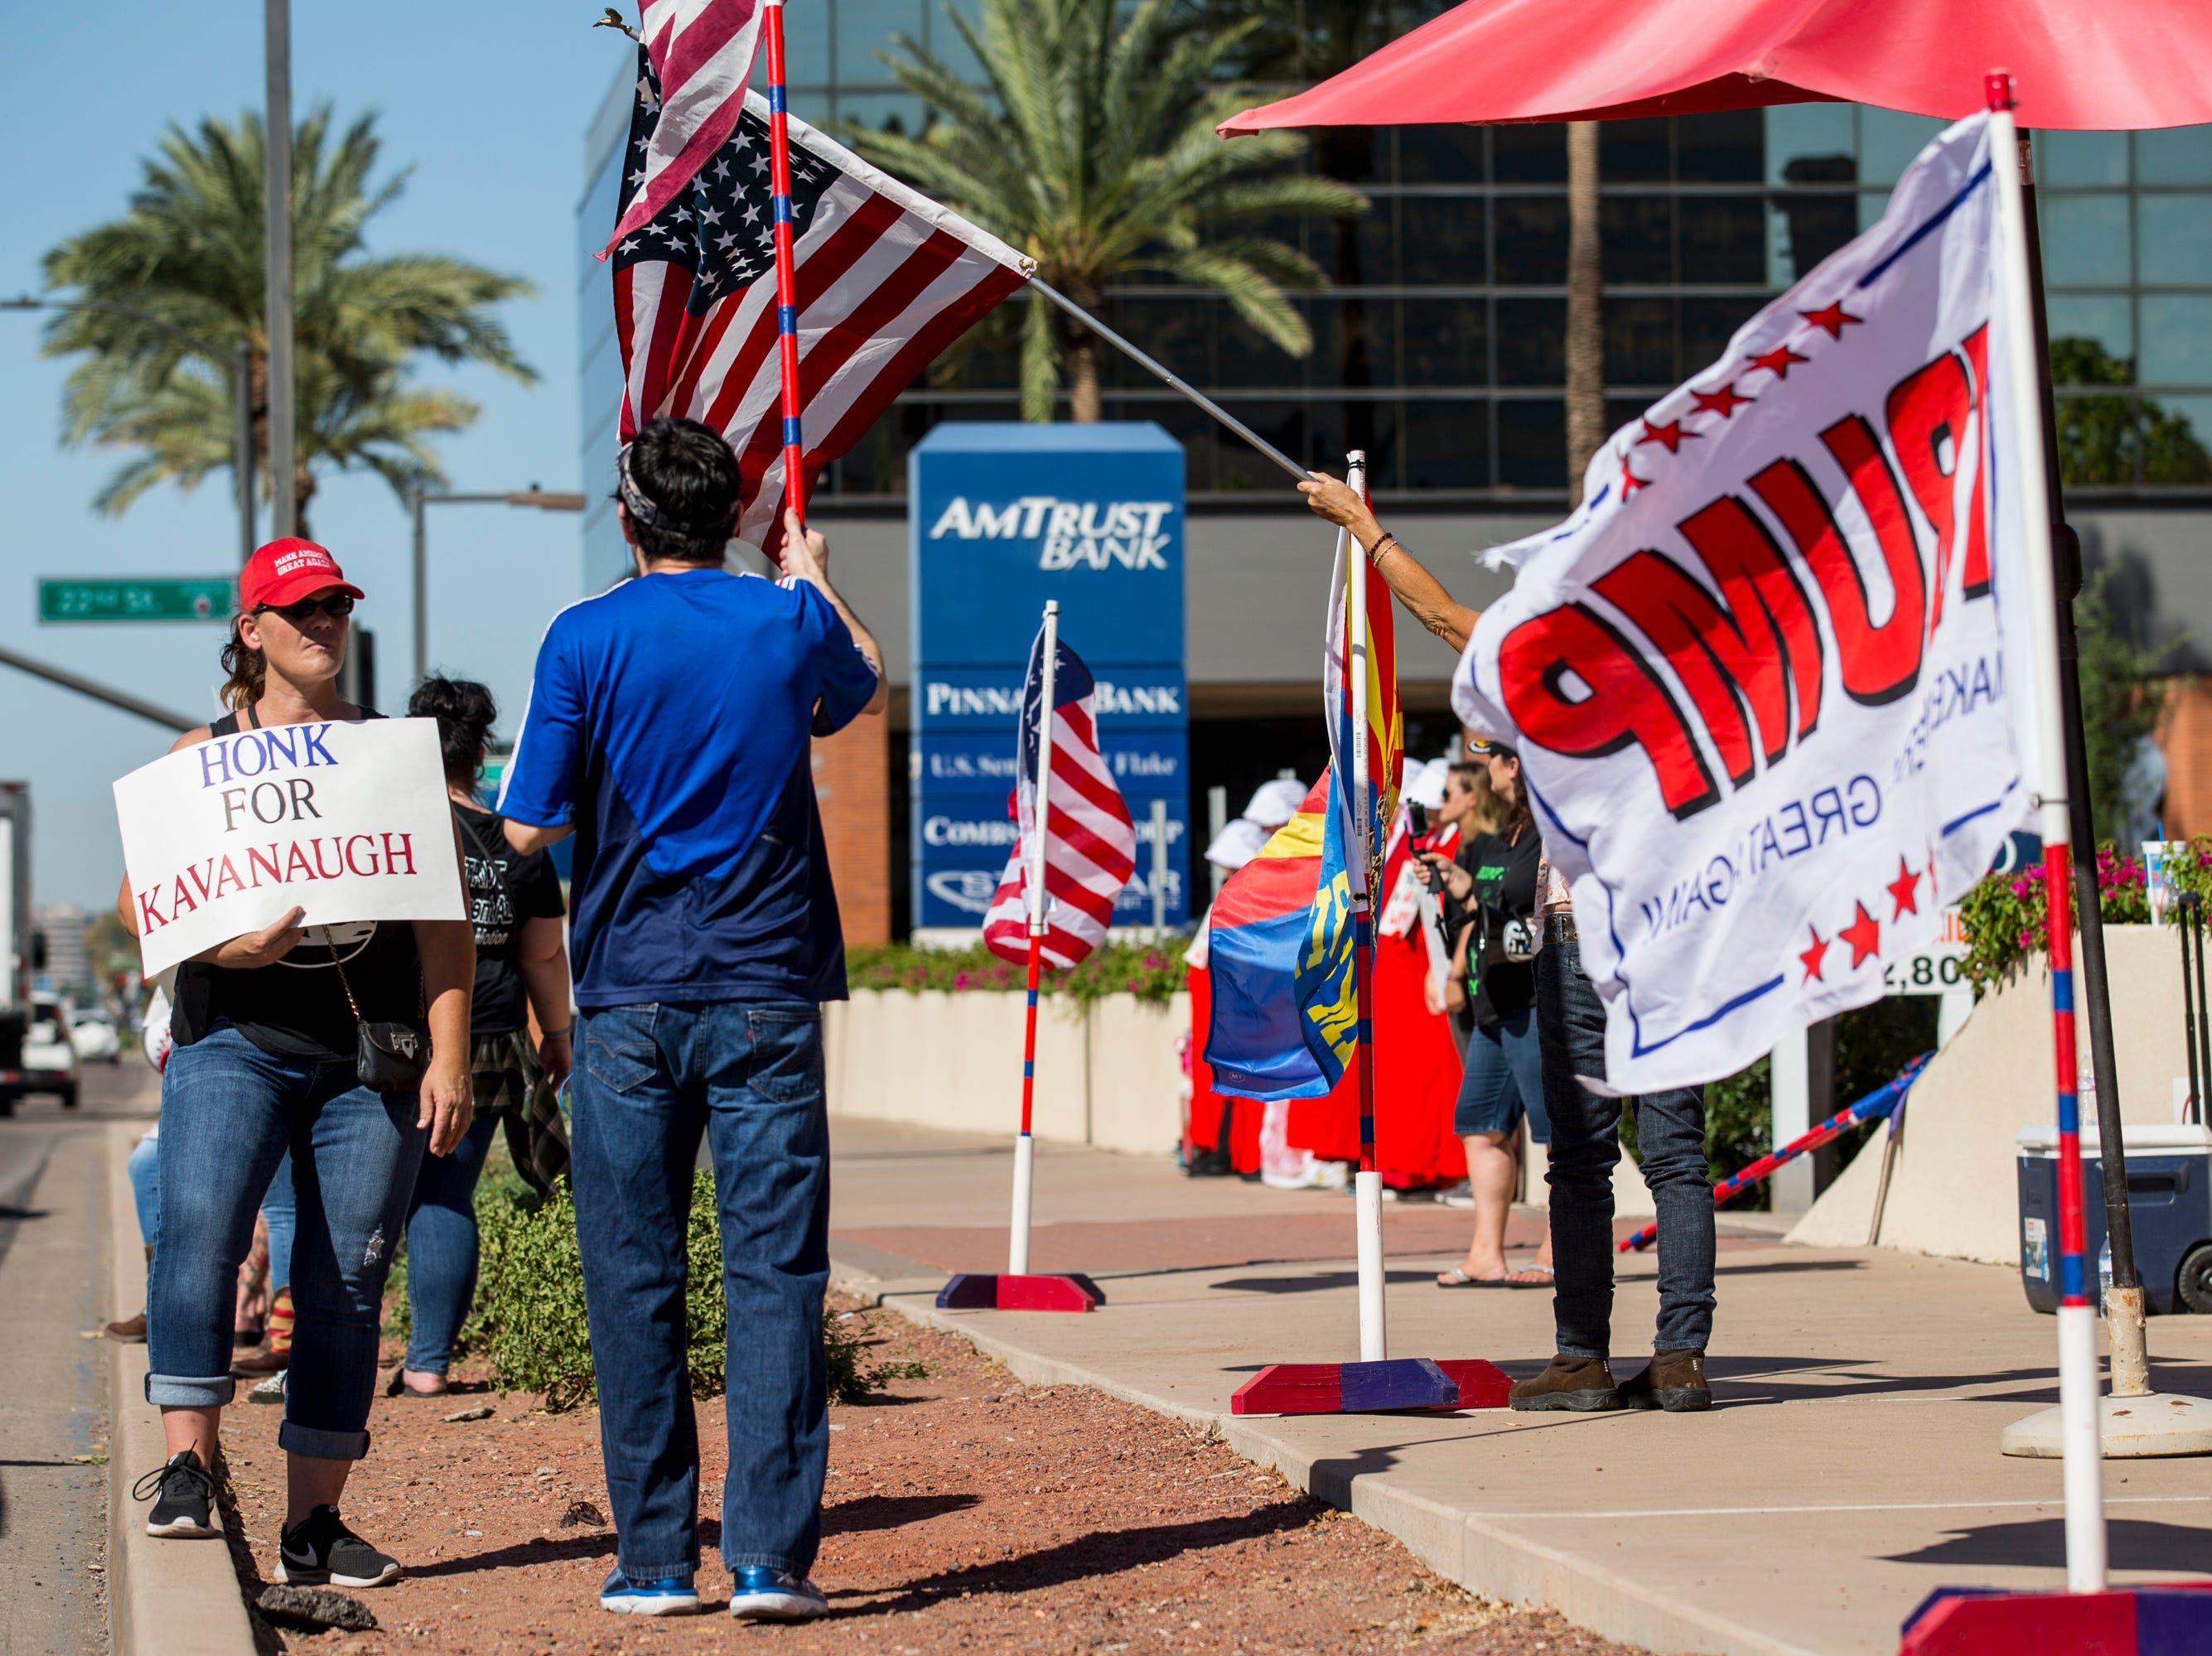 Supporters of Supreme Court nominee Brett Kavanaugh protest outside Sen. Jeff Flake's office  on Sept. 27, 2018, in Phoenix.